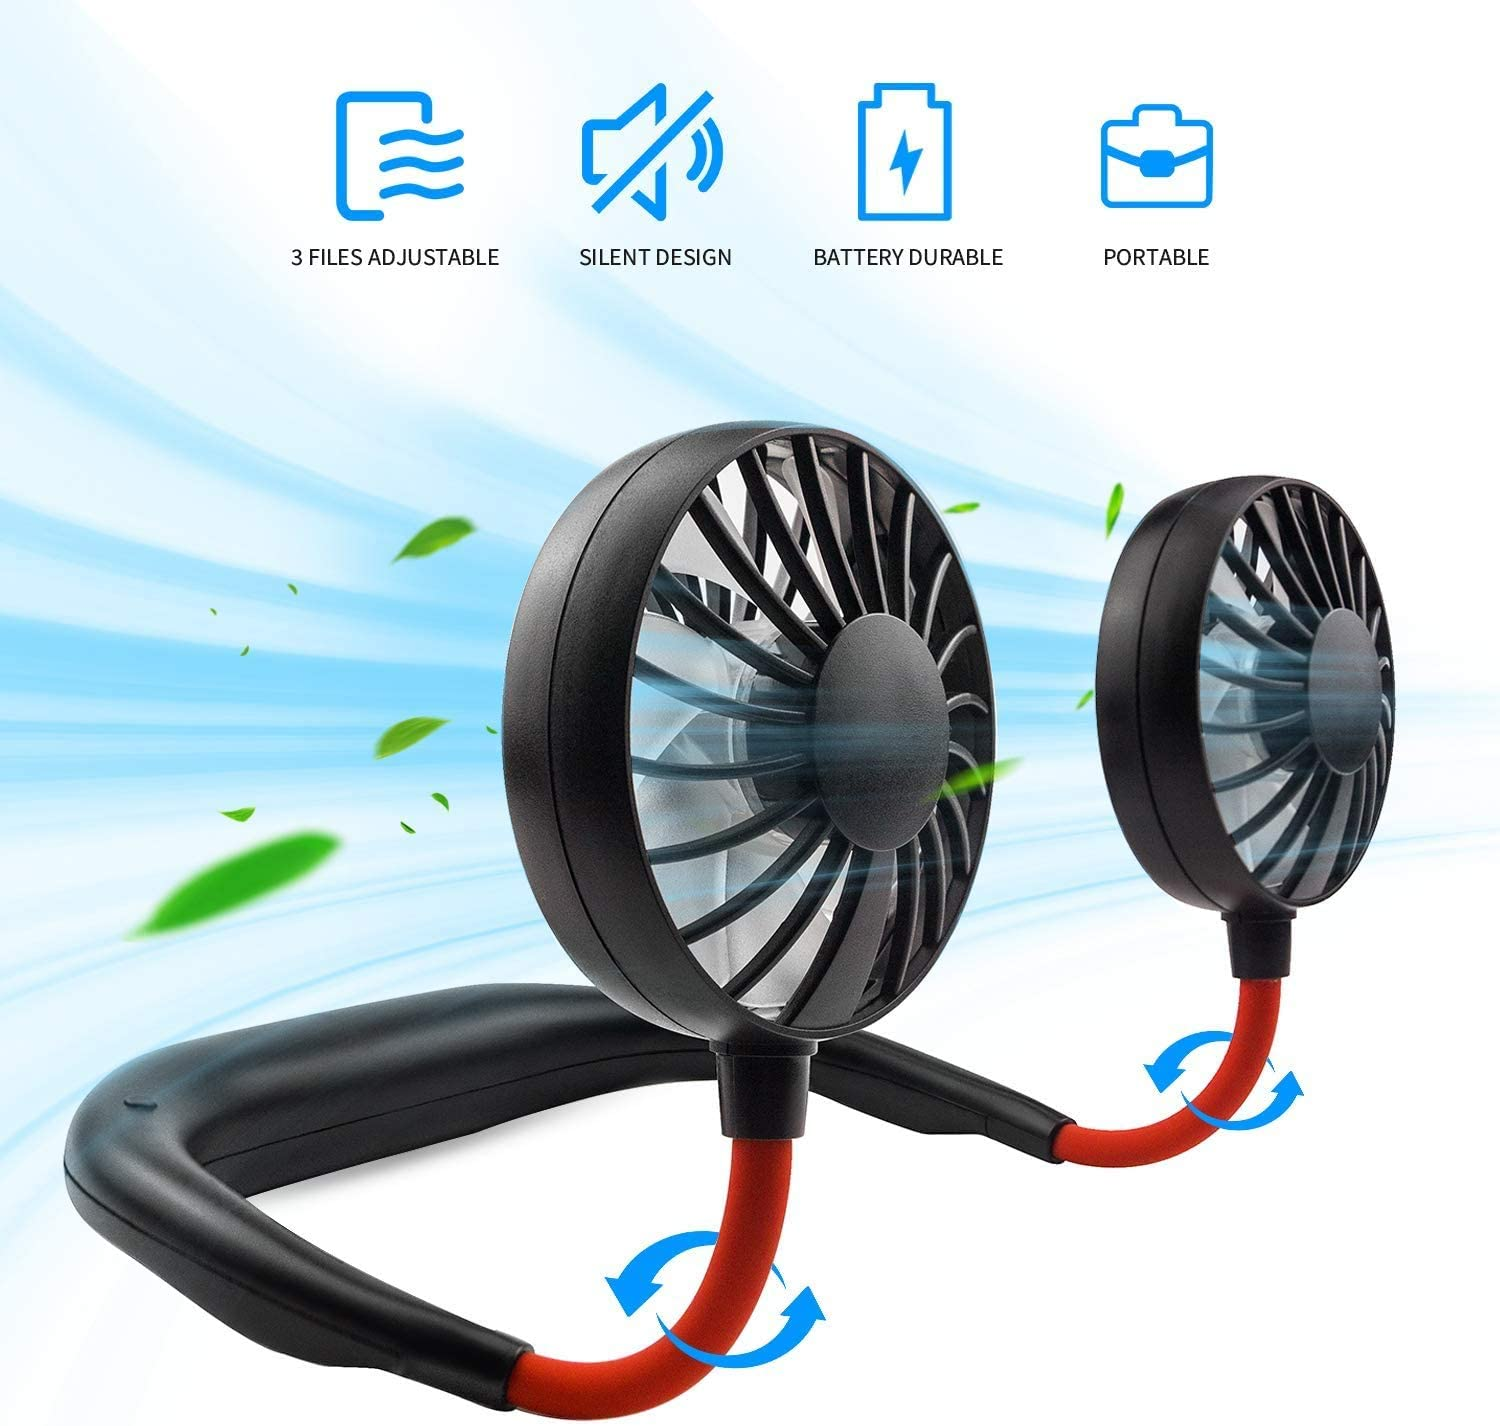 Hands Free Neck Fan, Rechargeable Mini USB Personal Fan, Headphone Design Wearable Neckband fan with 360° Rotation, 3 Adjustable Speeds, Colorful LED Lighting, Cooling Indoor and Outdoor Comfort, for for Hot Flashes Home Travel Office Home Sports Outdoor